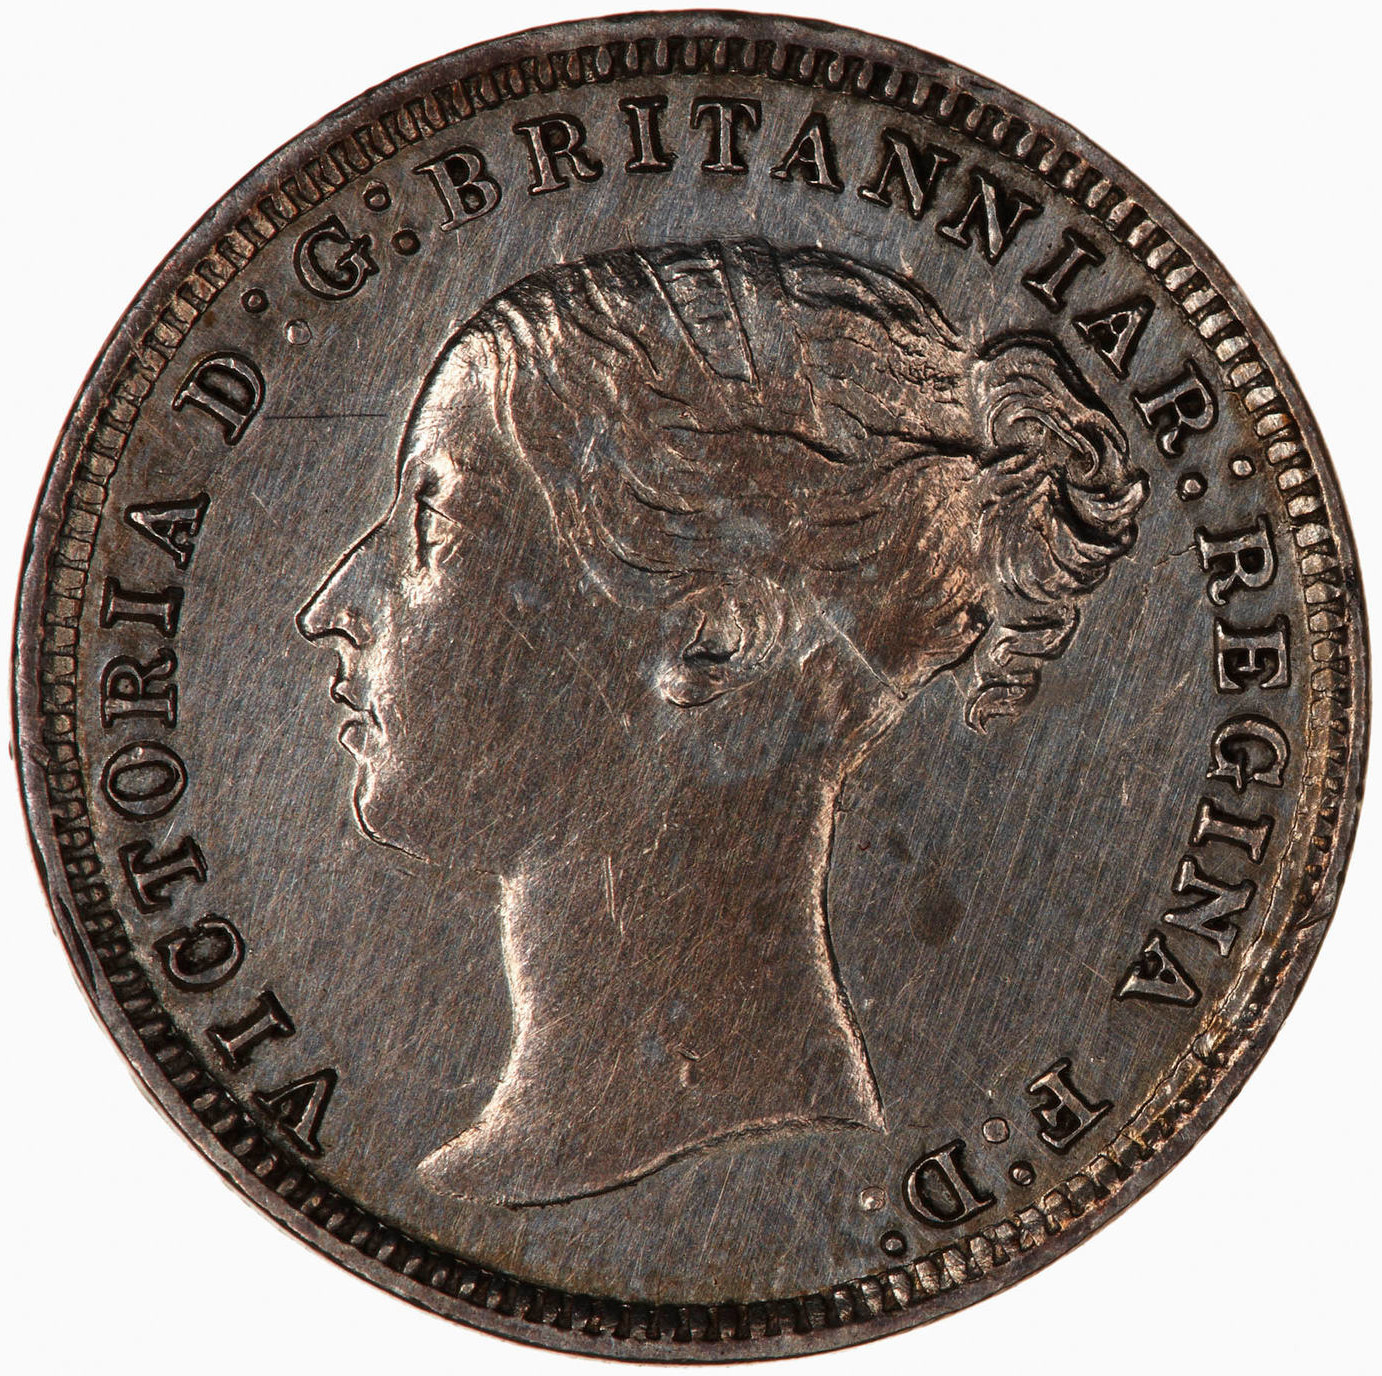 Threepence 1877 (Circulating): Photo Coin - Threepence, Queen Victoria, Great Britain, 1877